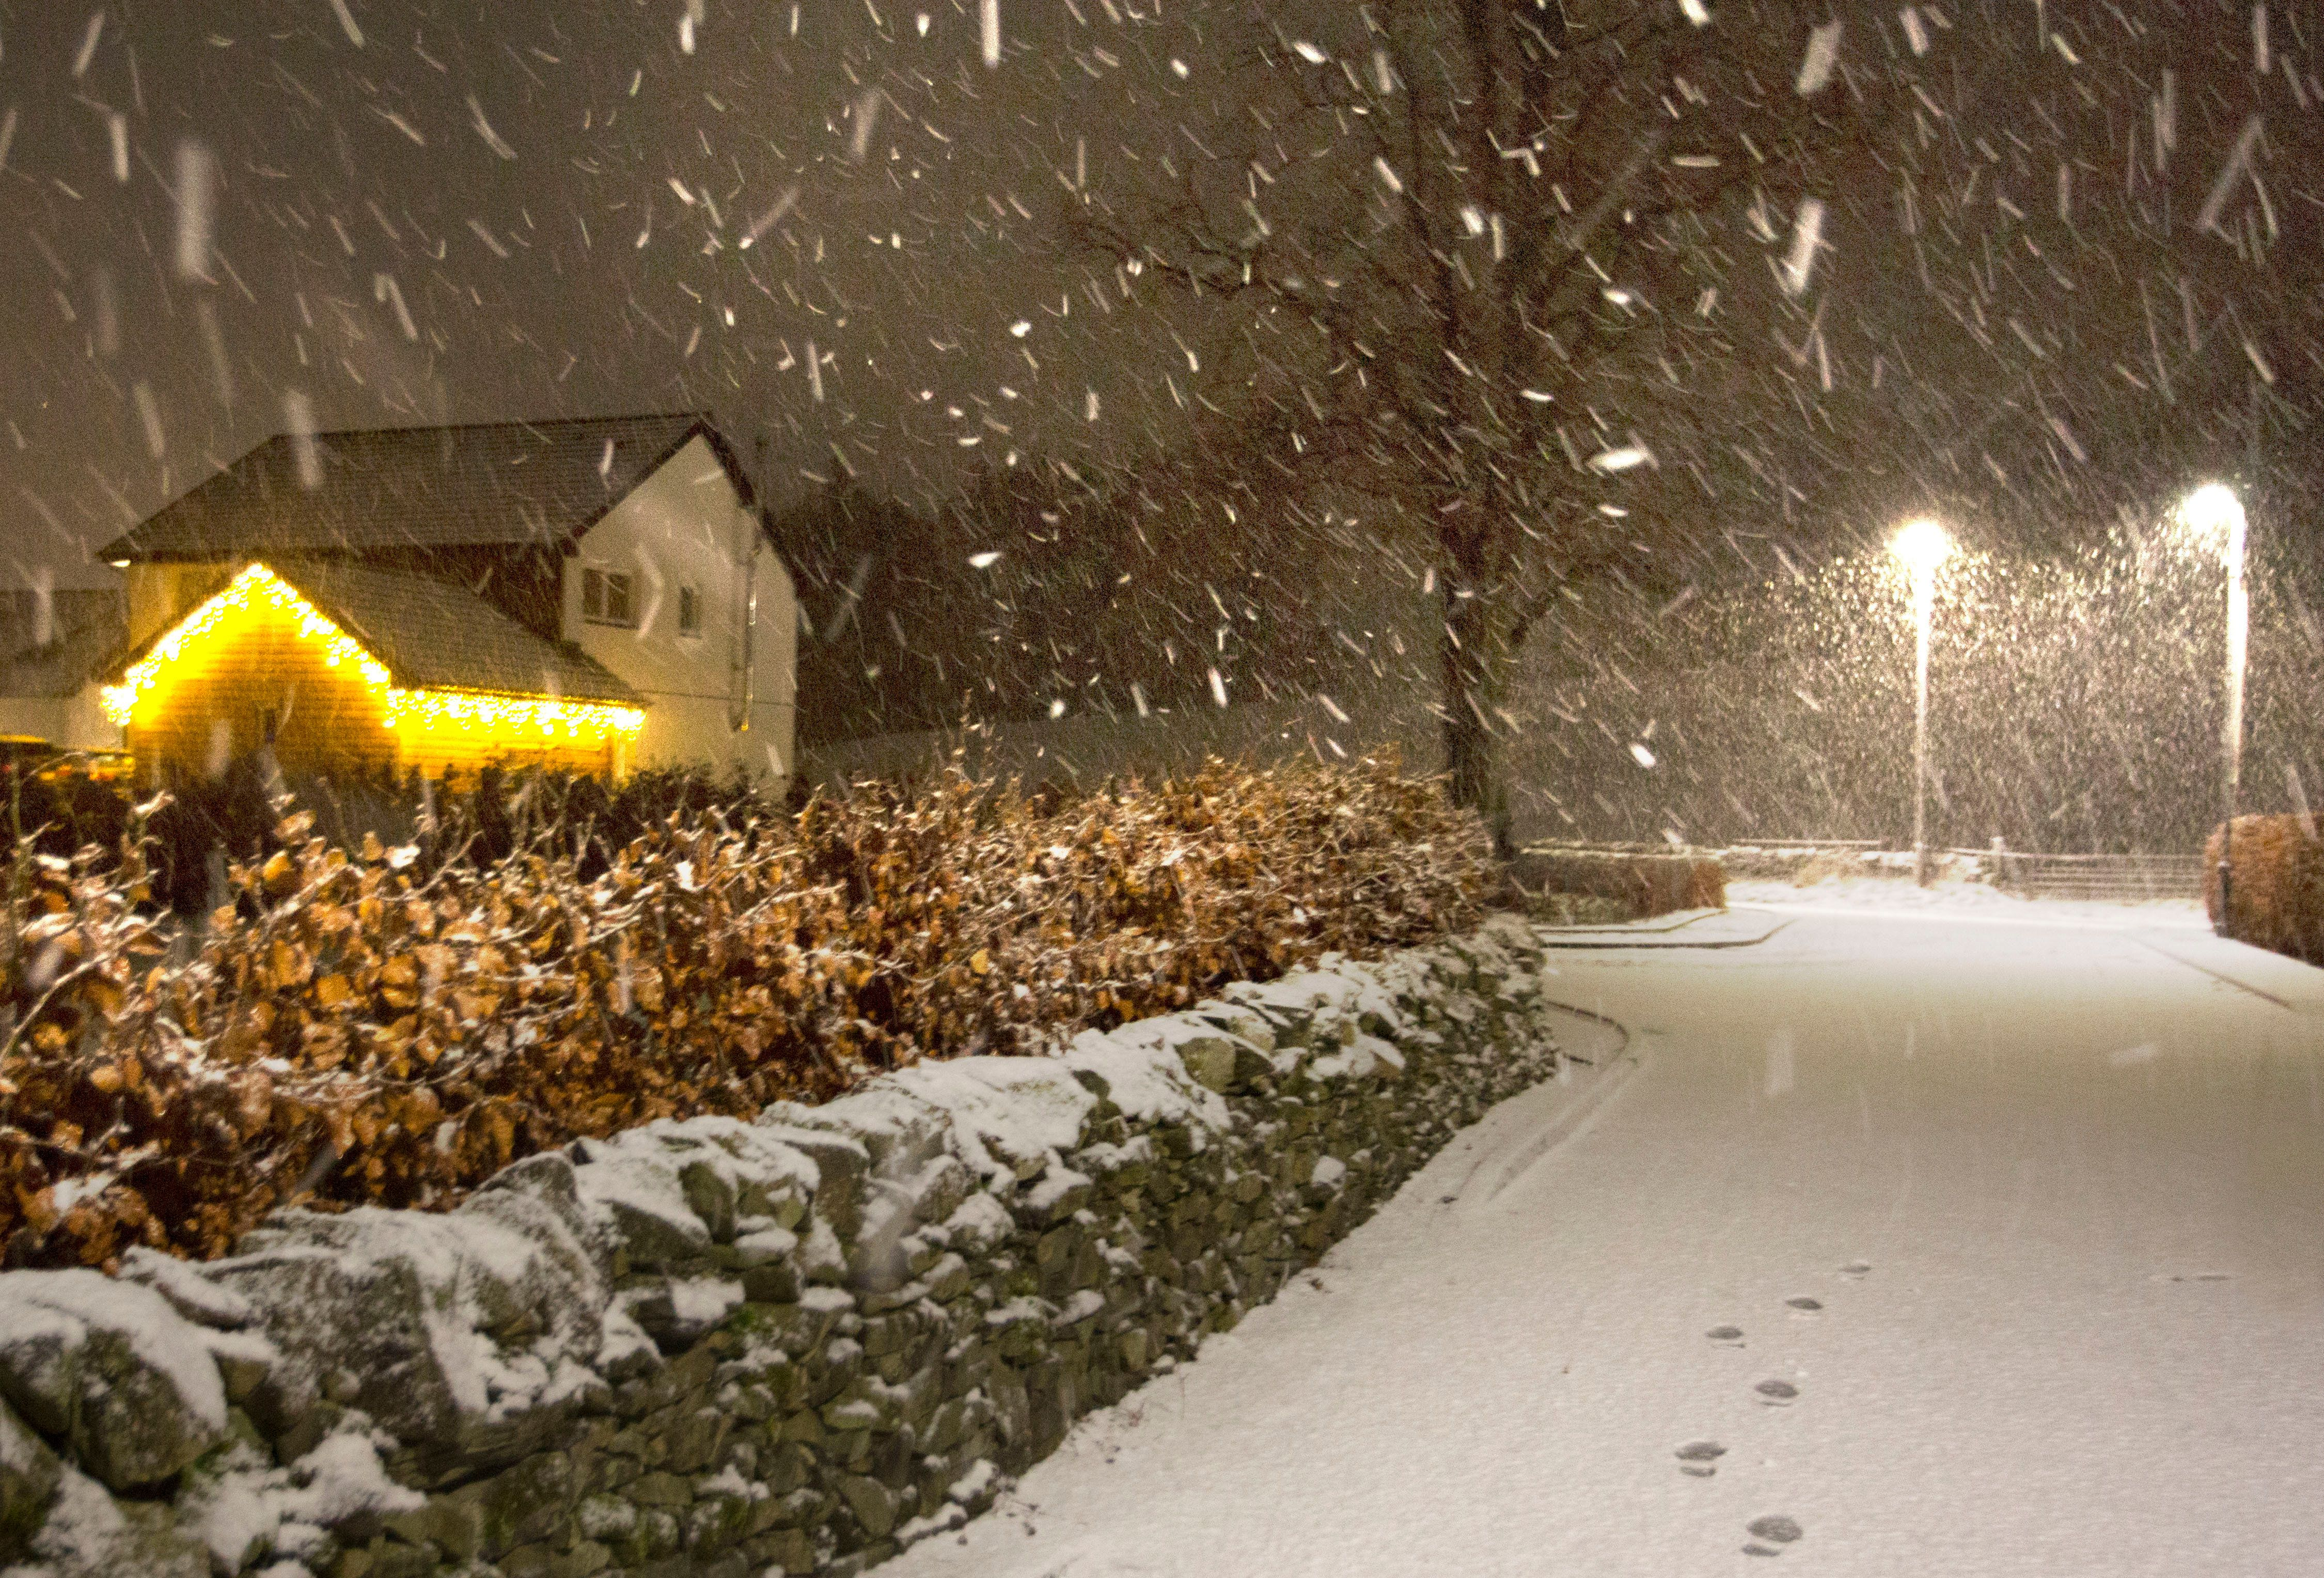 Storm Deirdre Weather Chaos Hits Road, Air Travel And